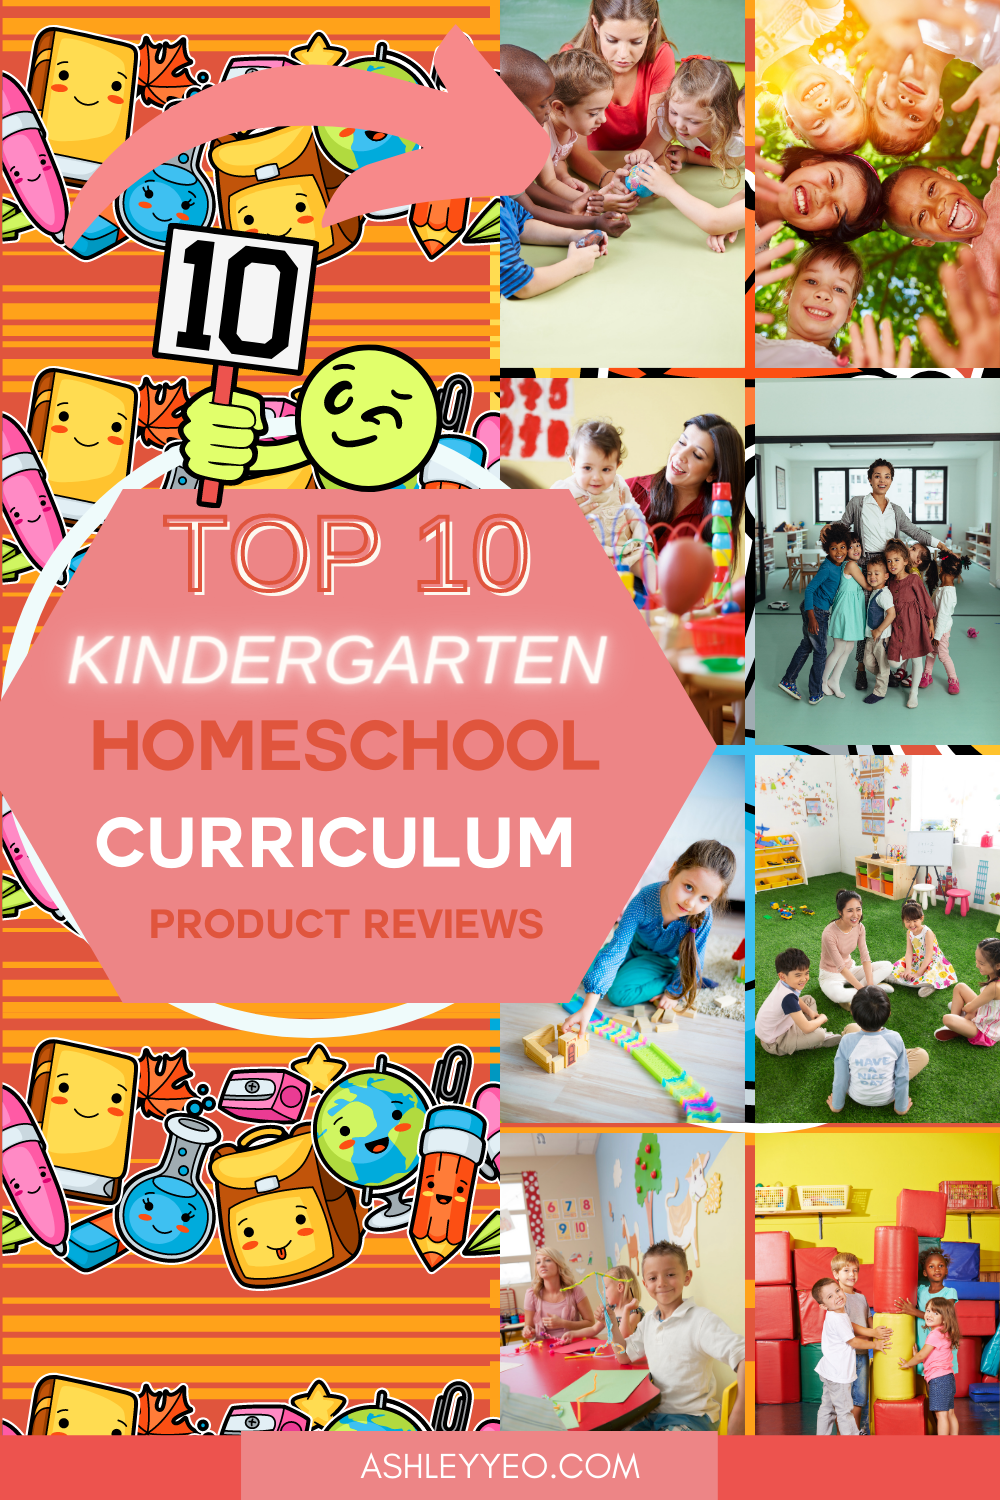 Top 10 Kindergarten Homeschool Curriculum Product Reviews